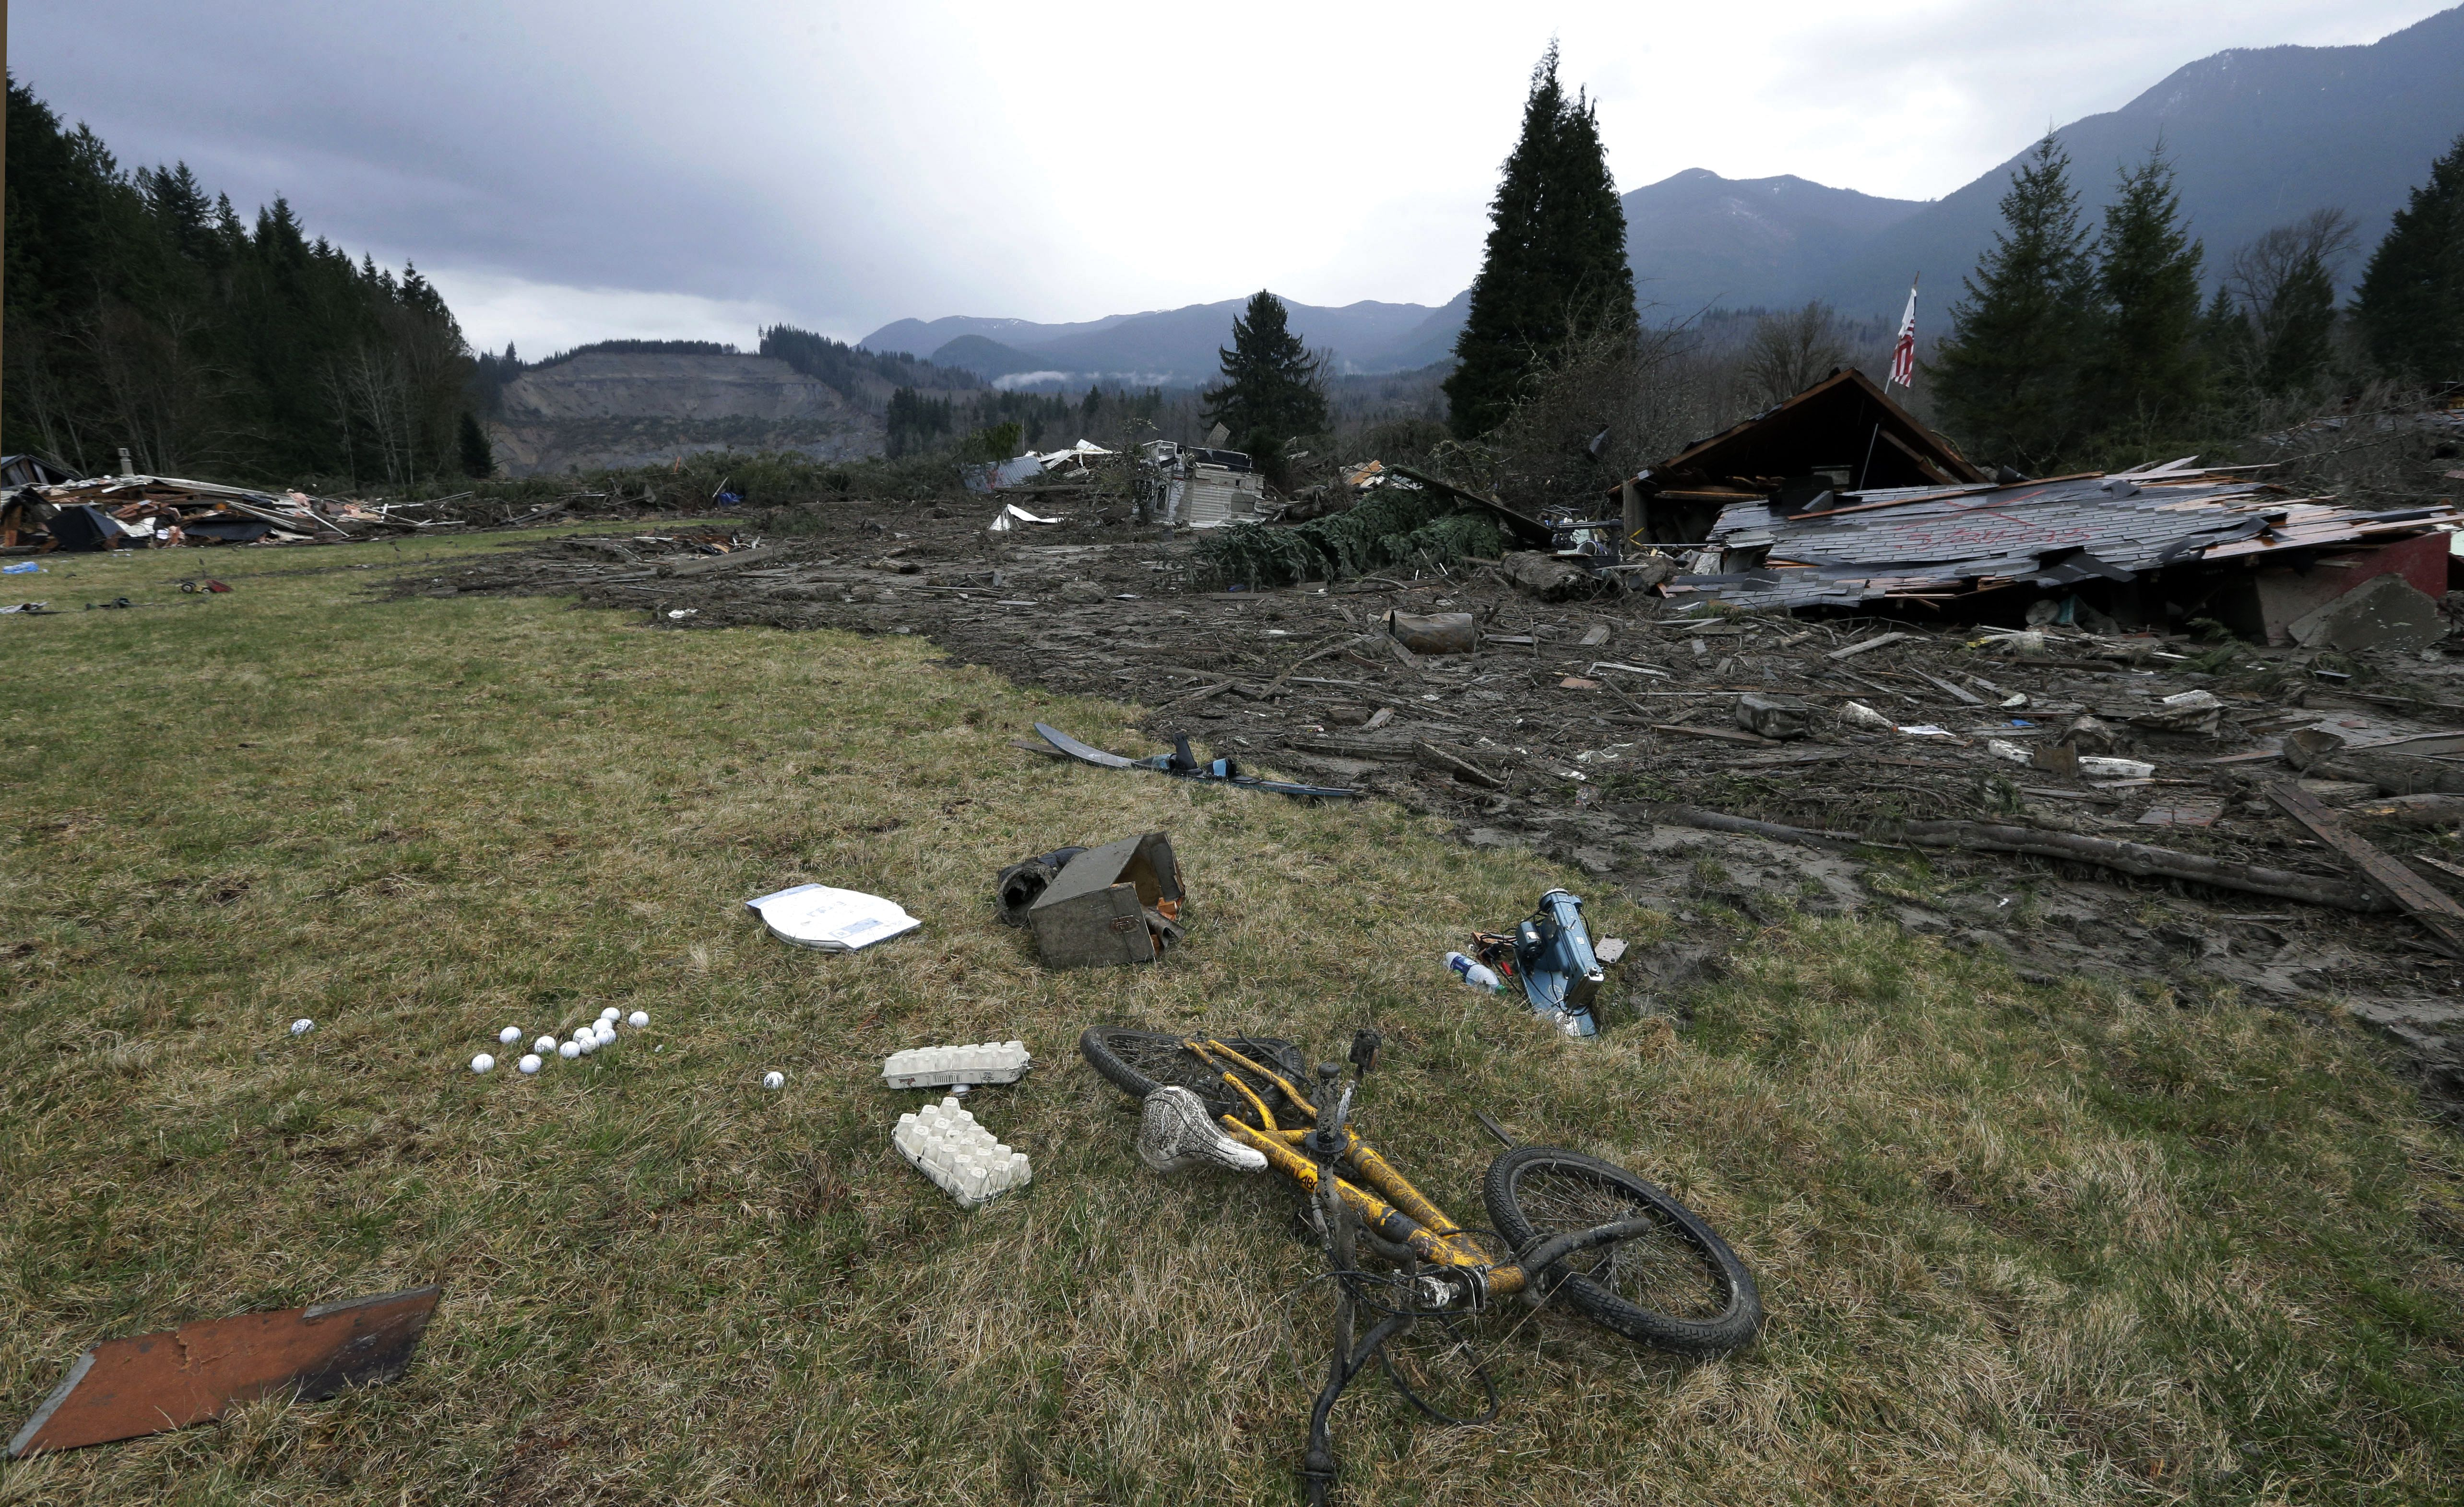 child's bicycle at scene of deadly mudslide